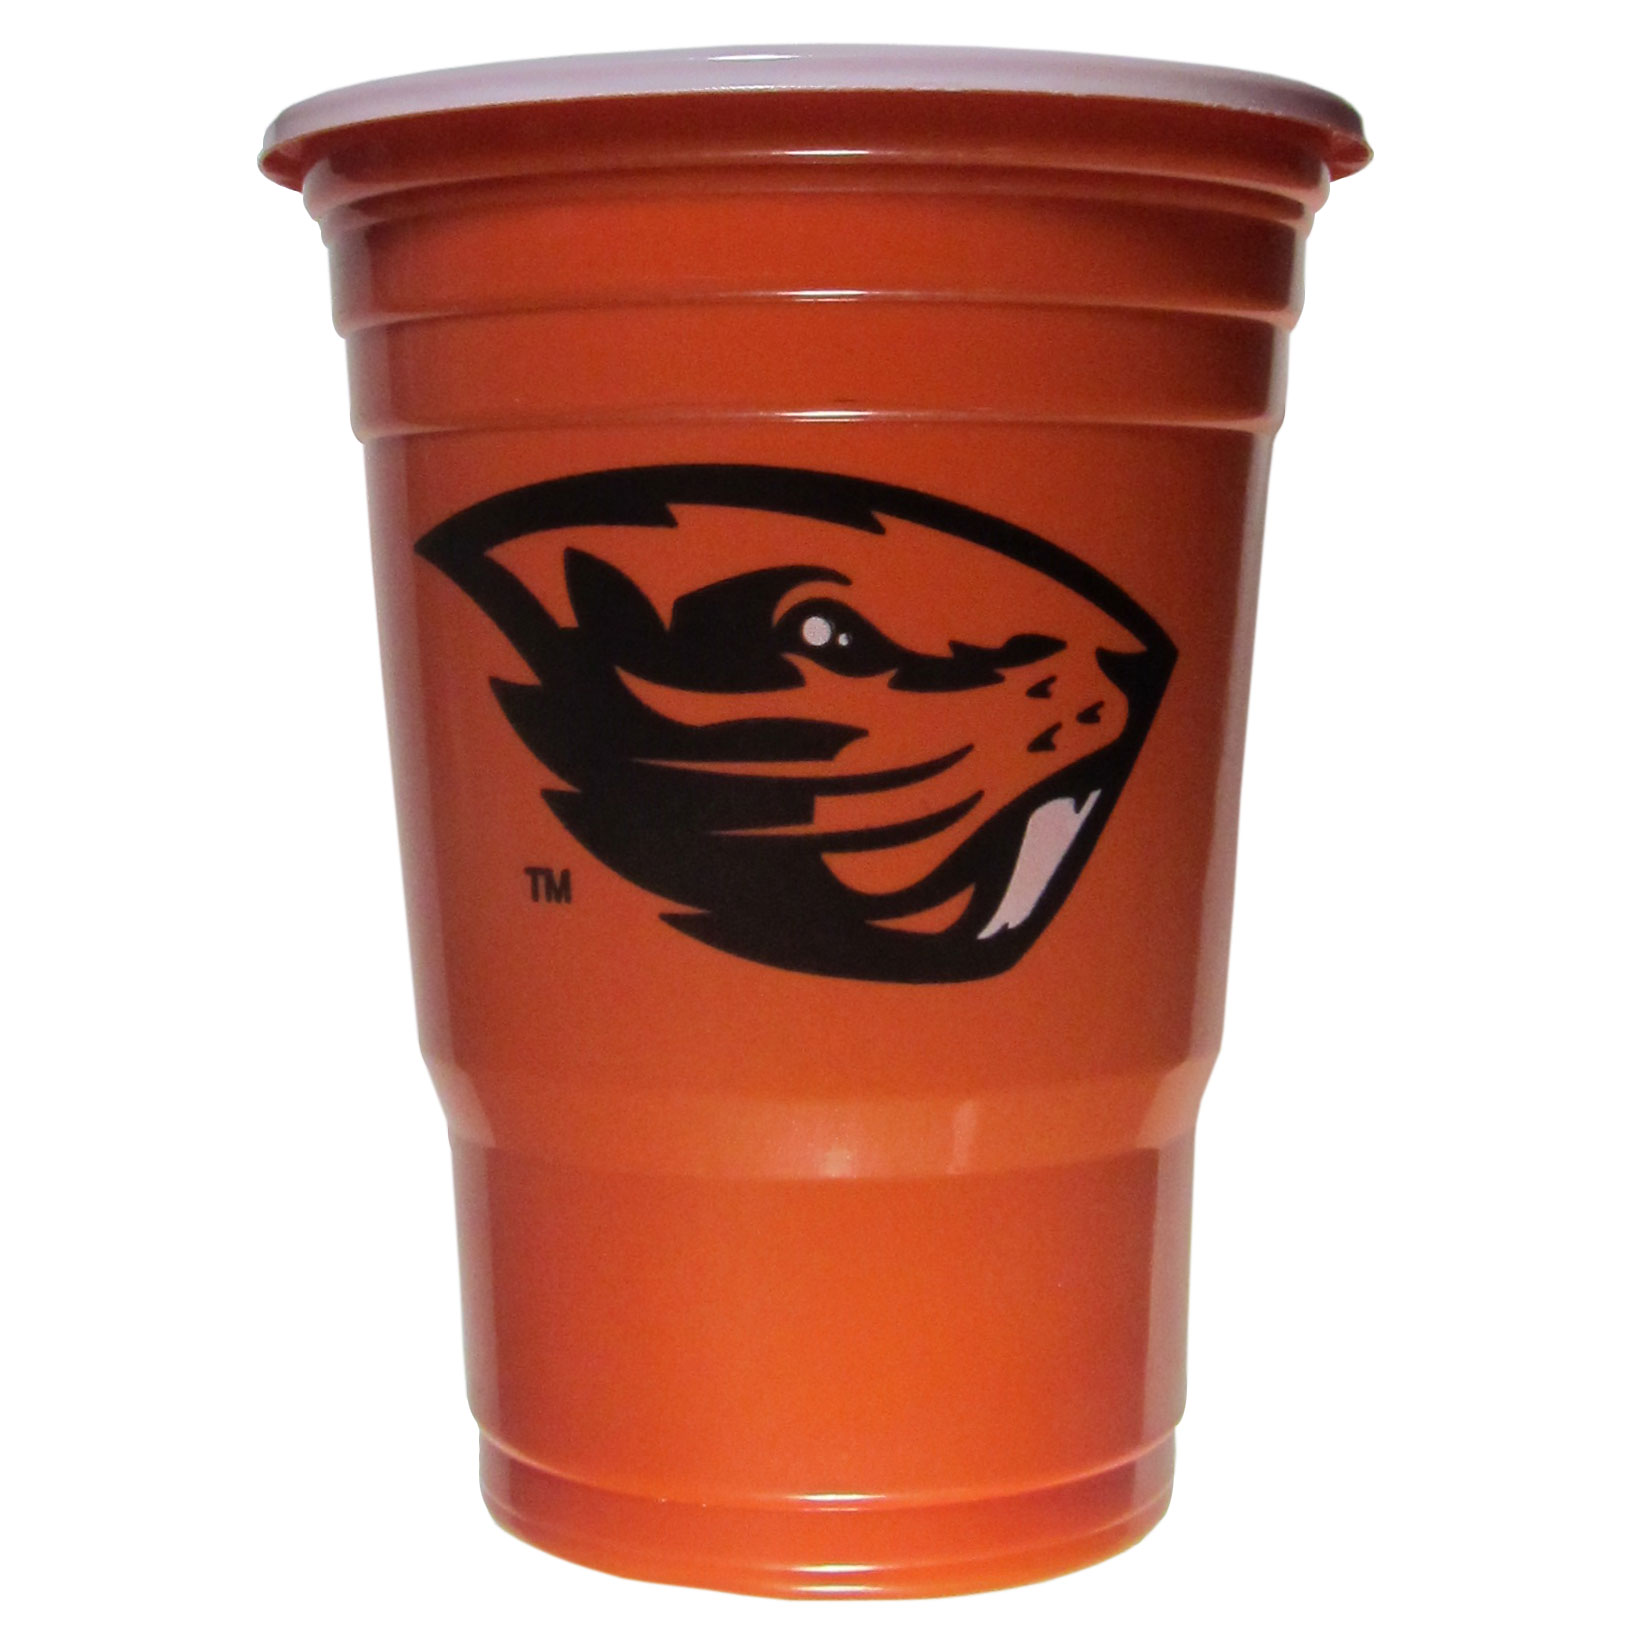 Oregon St. Beavers Plastic Game Day Cups - Our 18 ounce game day cups are what every tailgating or backyard events needs! The cups feature a big Oregon St. Beavers logo so you can show off your team pride. The popular 18 ounce size is perfect for drinks or ping pong balls! Sold in sleeves of 18 cups.